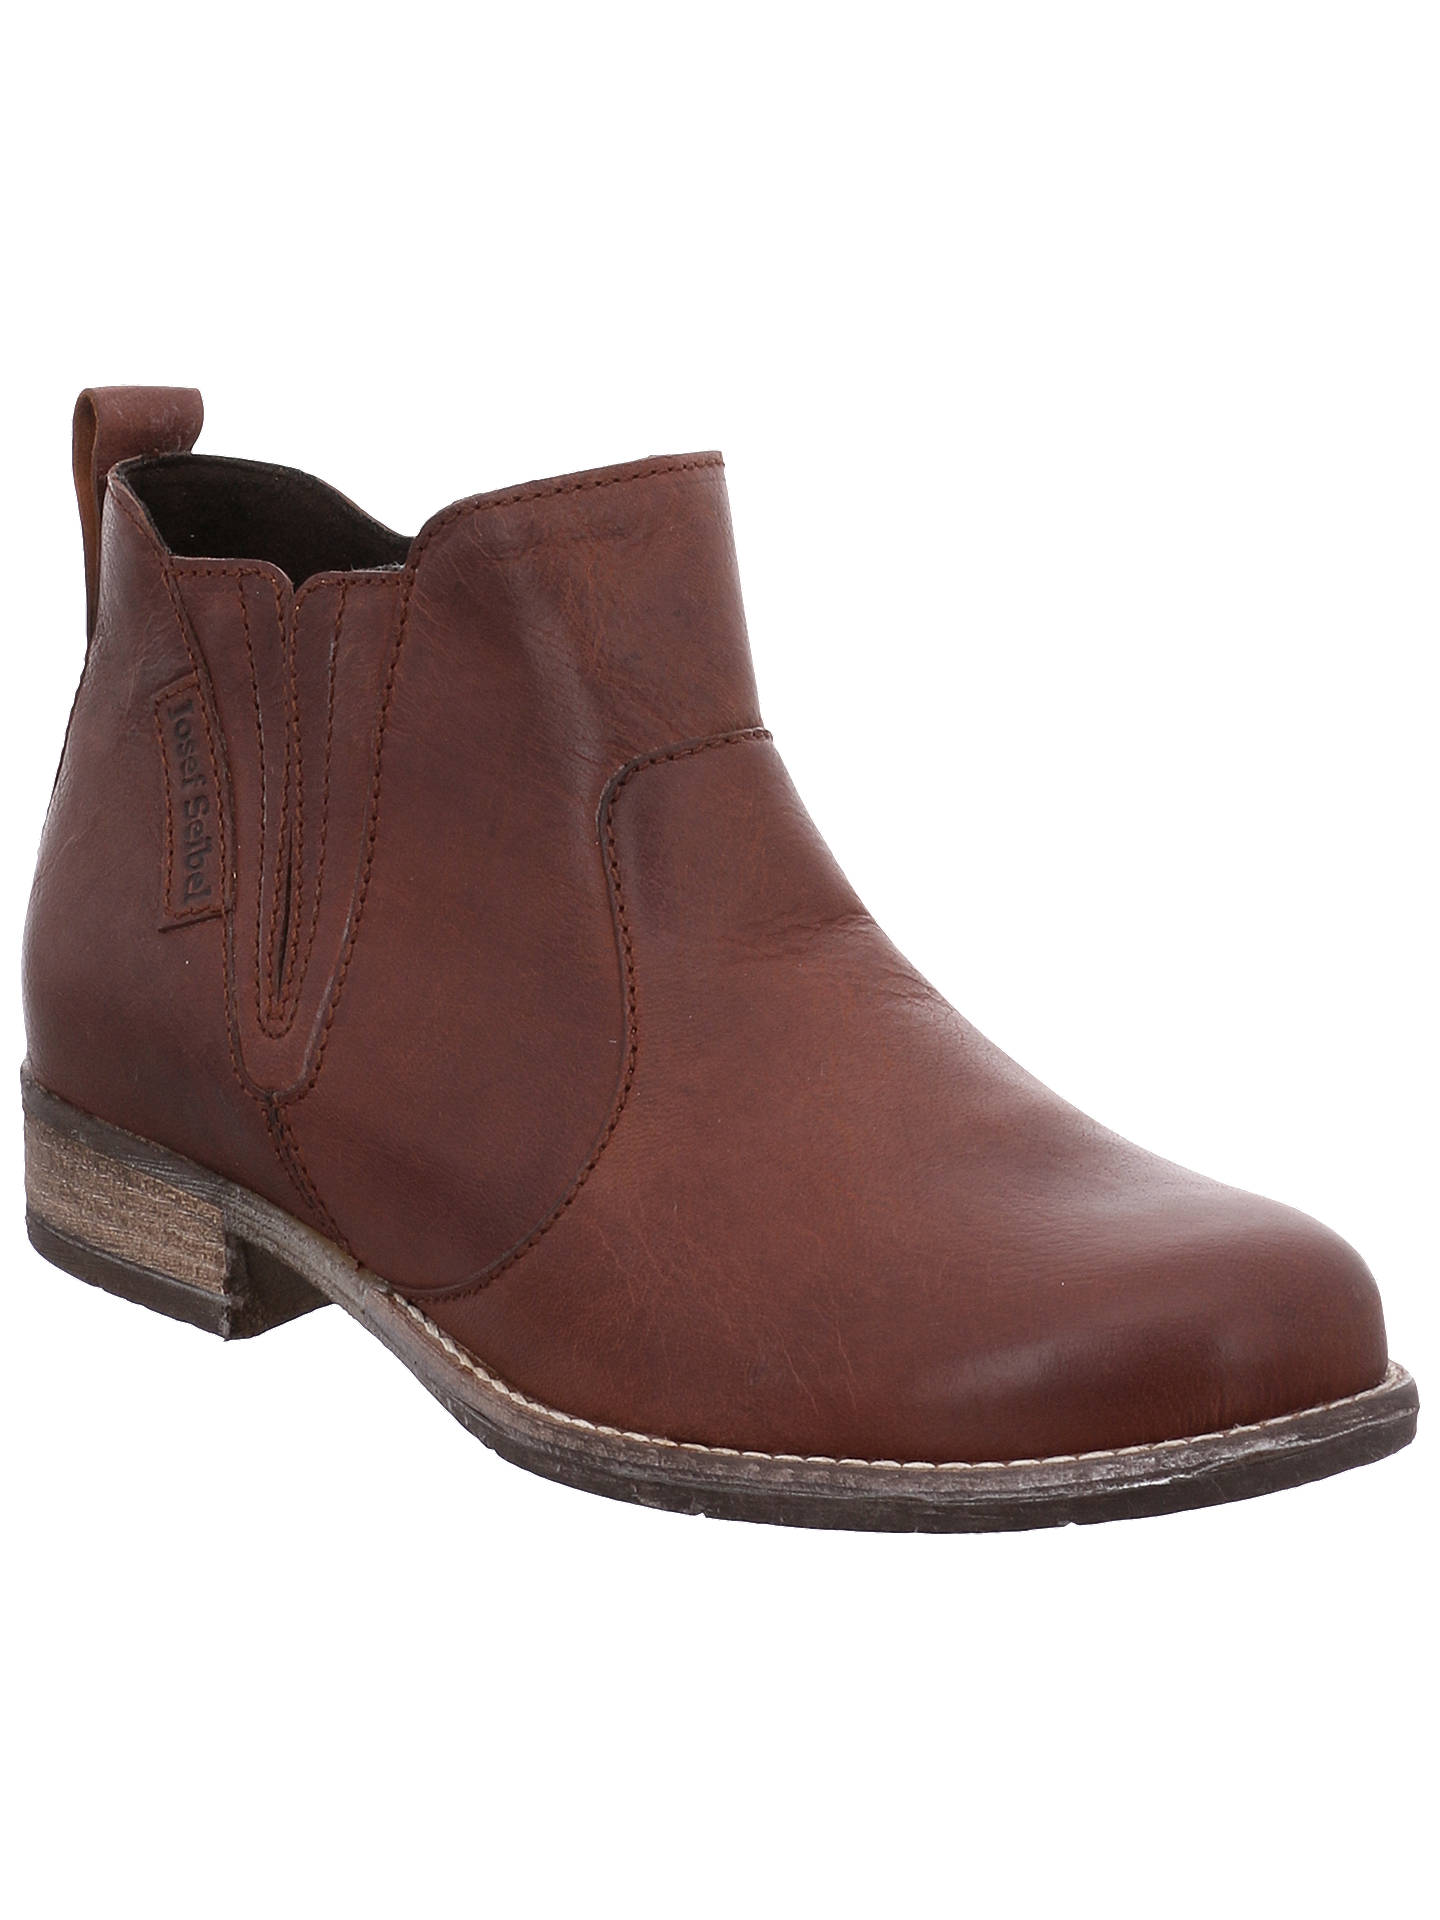 low priced c14ff d0f6a Josef Seibel Sienna 45 Ankle Boots, Camel at John Lewis ...